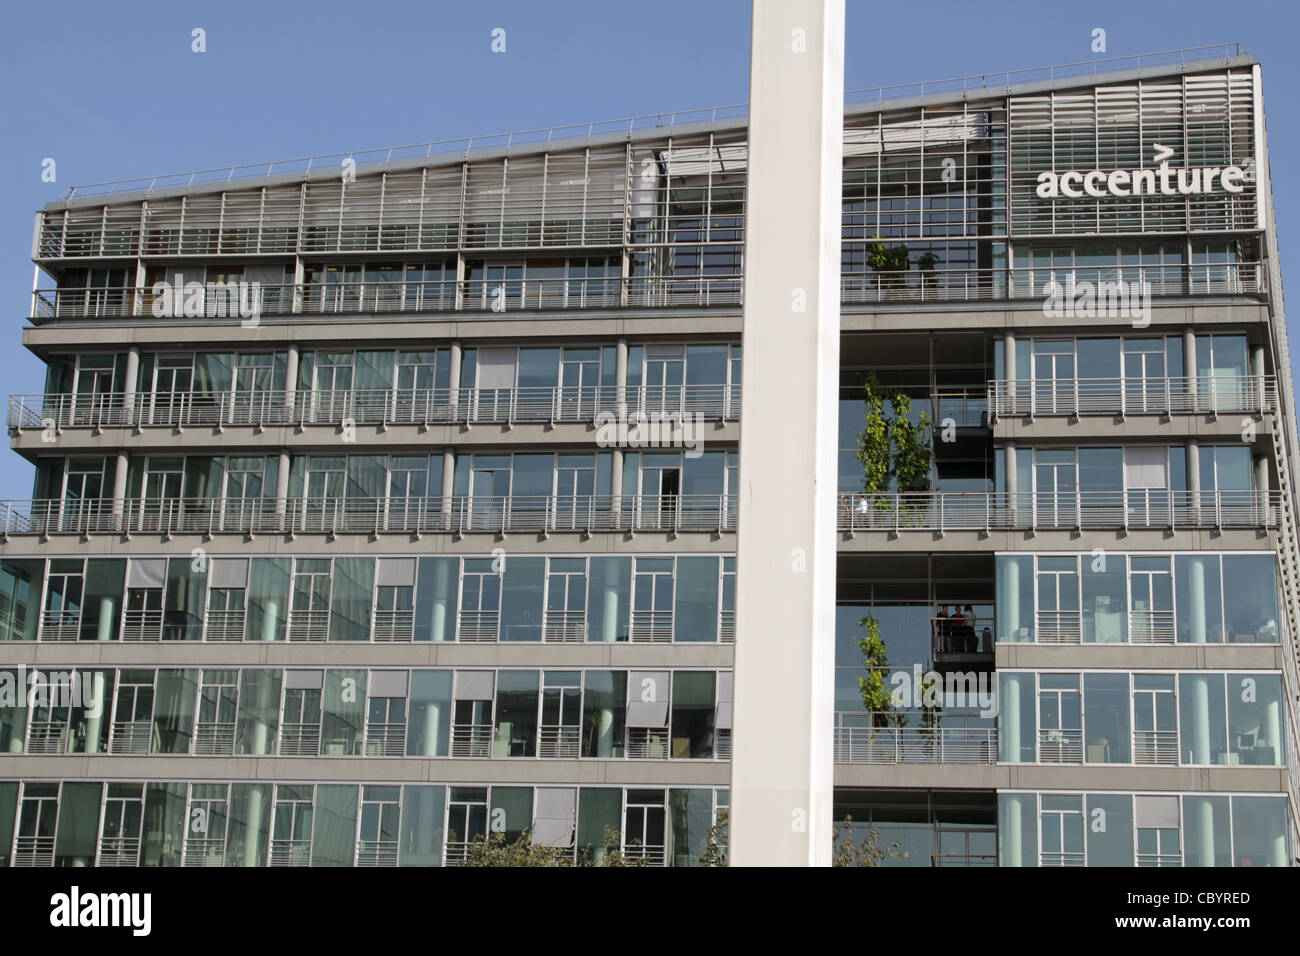 Accenture stockfotos accenture bilder alamy for Accenture london office